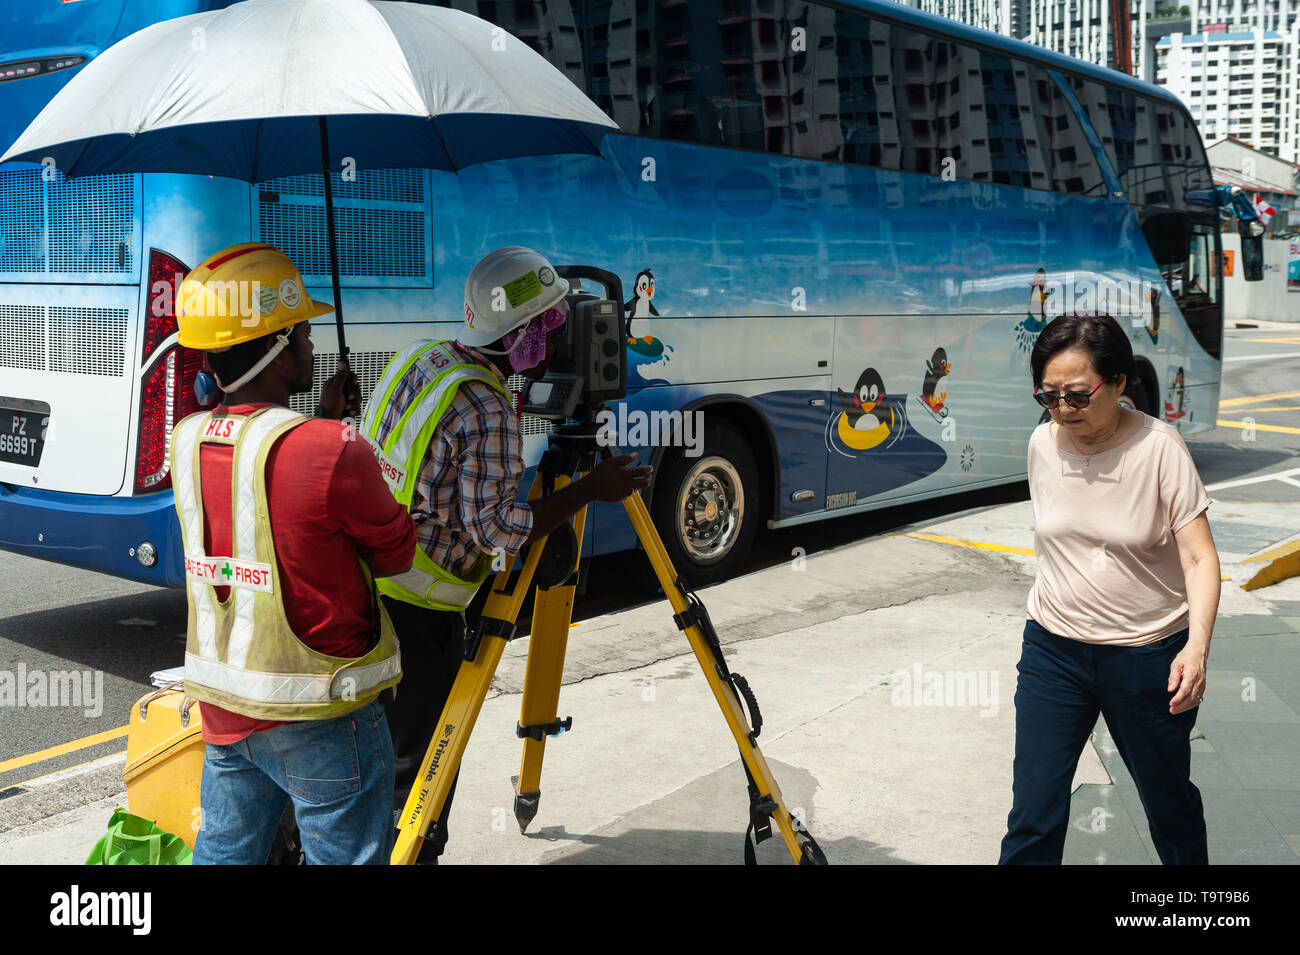 18.04.2018, Singapore, Republic of Singapore, Asia - A surveyor is taking readings from a theodolite in Chinatwon as a woman is walking by. - Stock Image